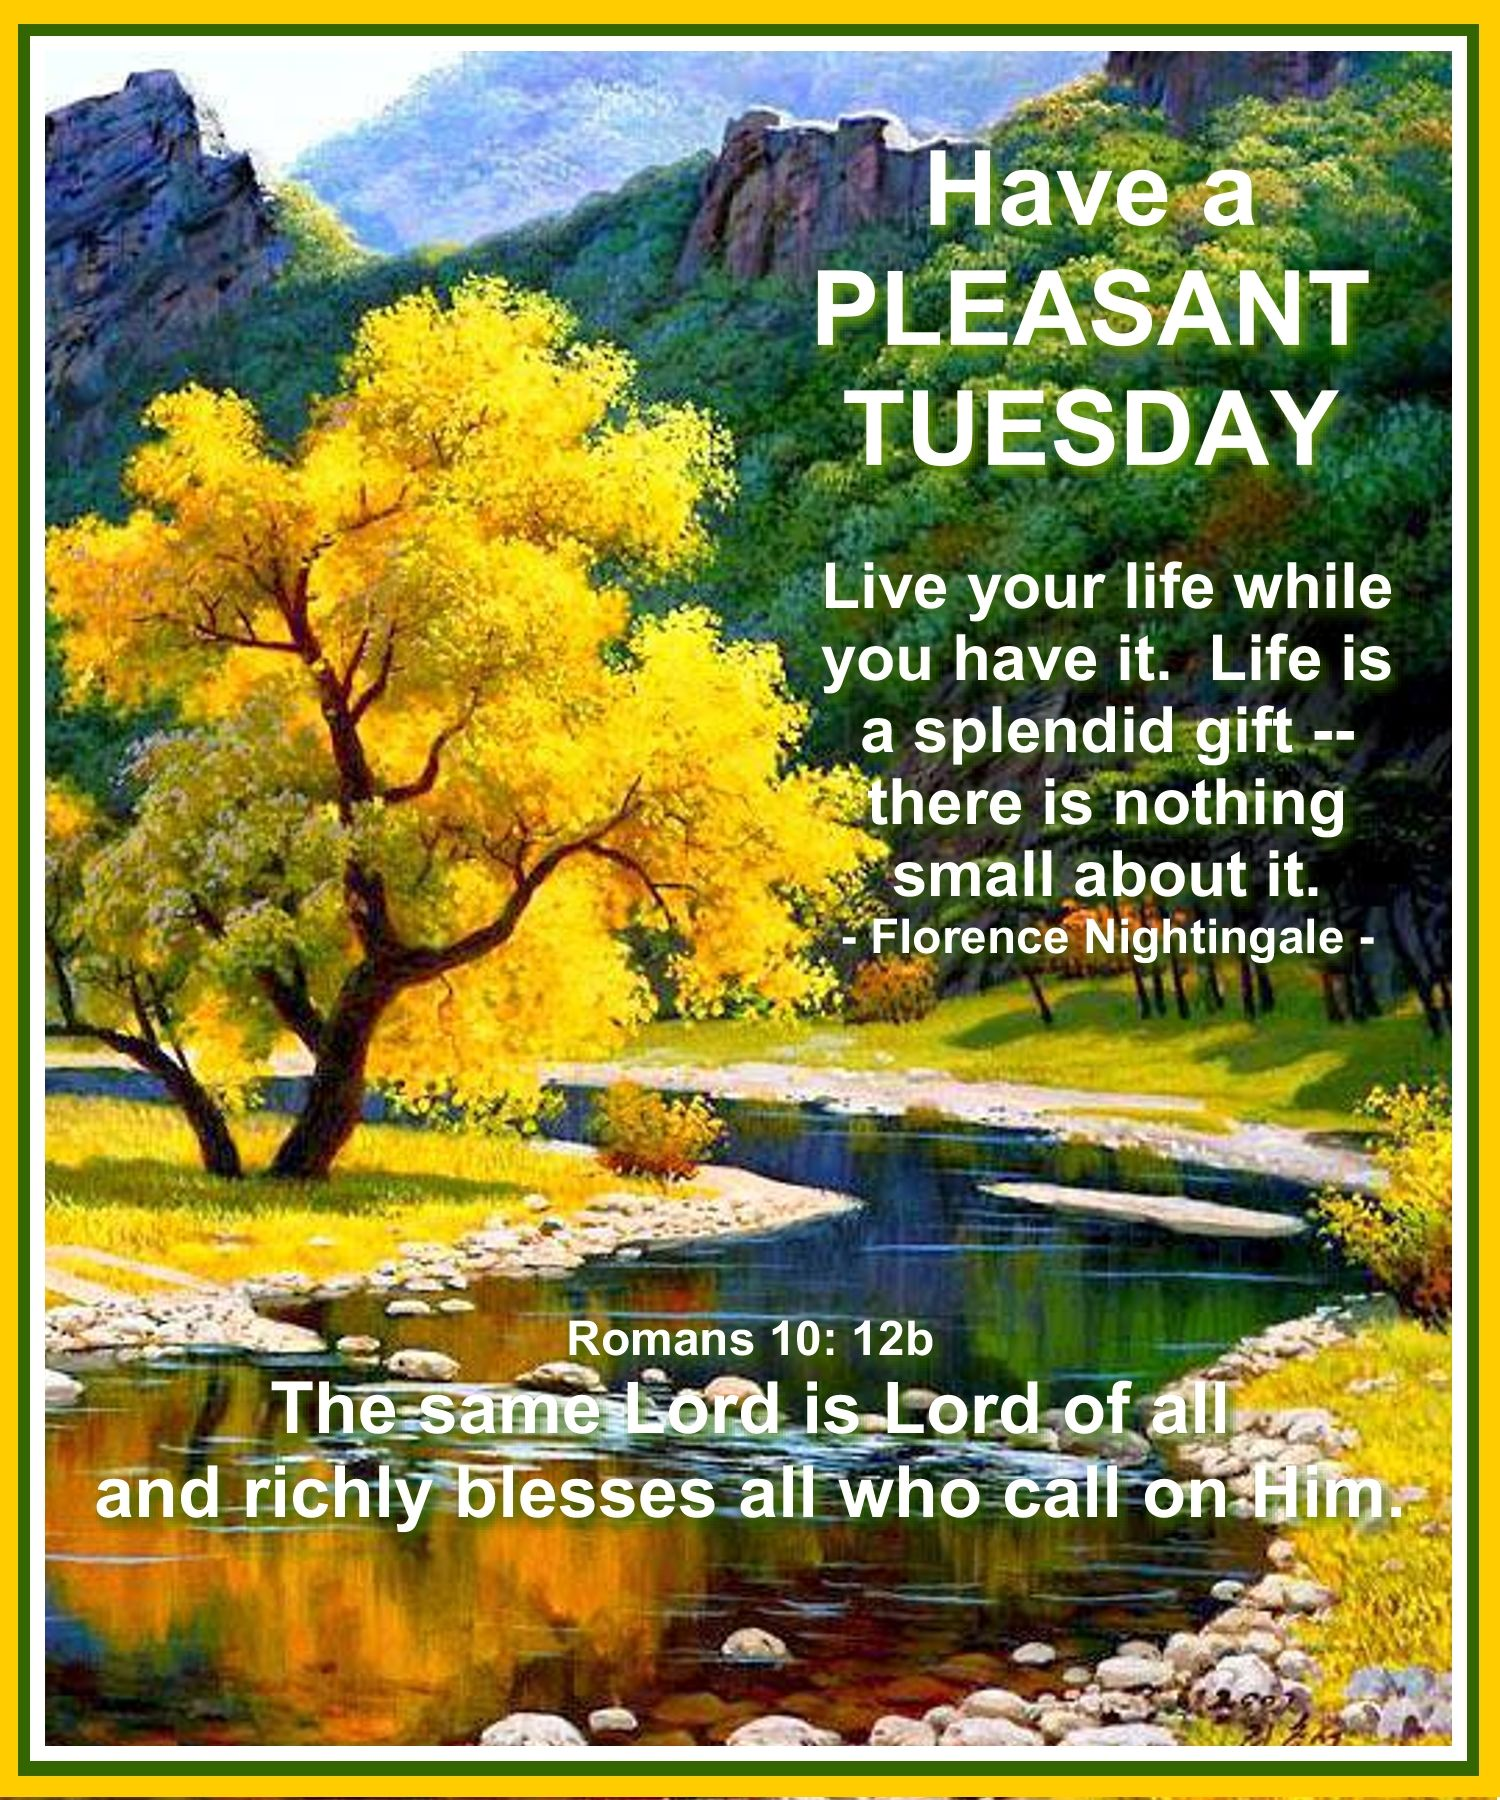 Pin By Sue Husmann On Tuesday Blessings Tuesday Quotes Good Morning Good Morning Tuesday Images Tuesday Quotes